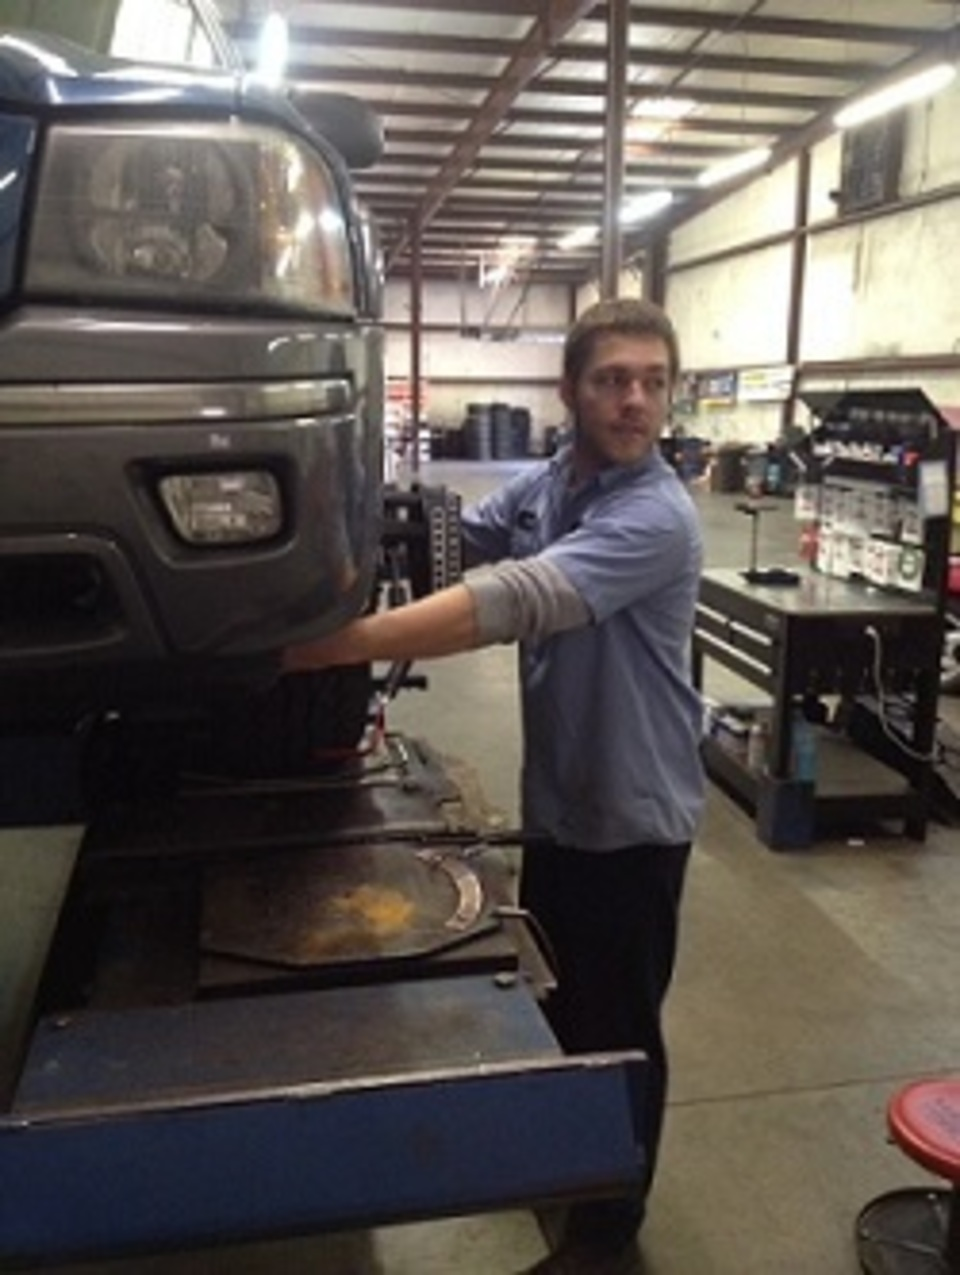 Meet our Service Technician, Shane Tyrolf: